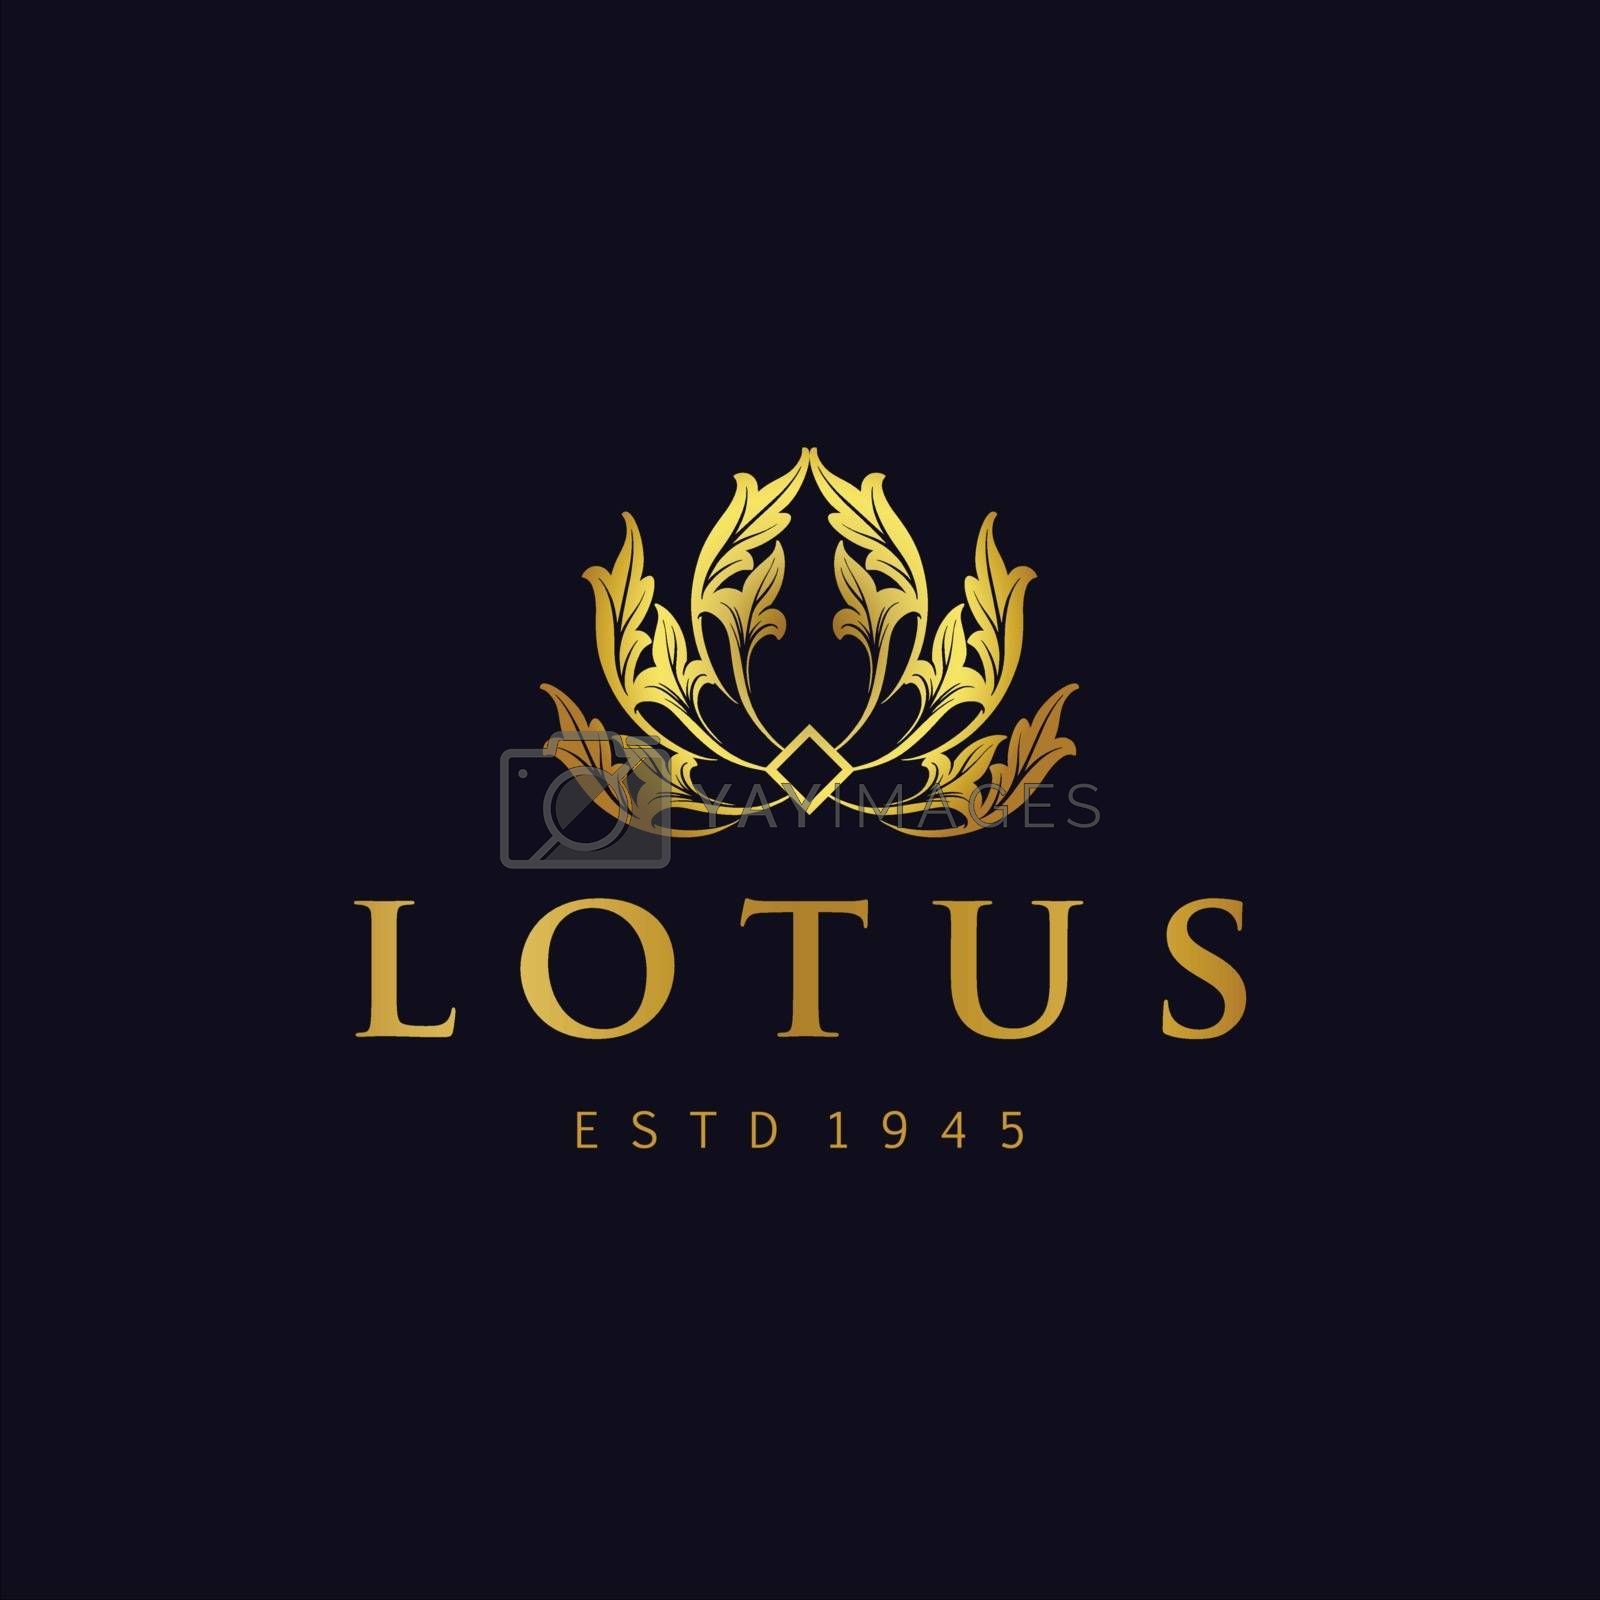 Illustrations Golden Lotus Logo Flowers Vector for spa beauty jewelry and hotel elegant